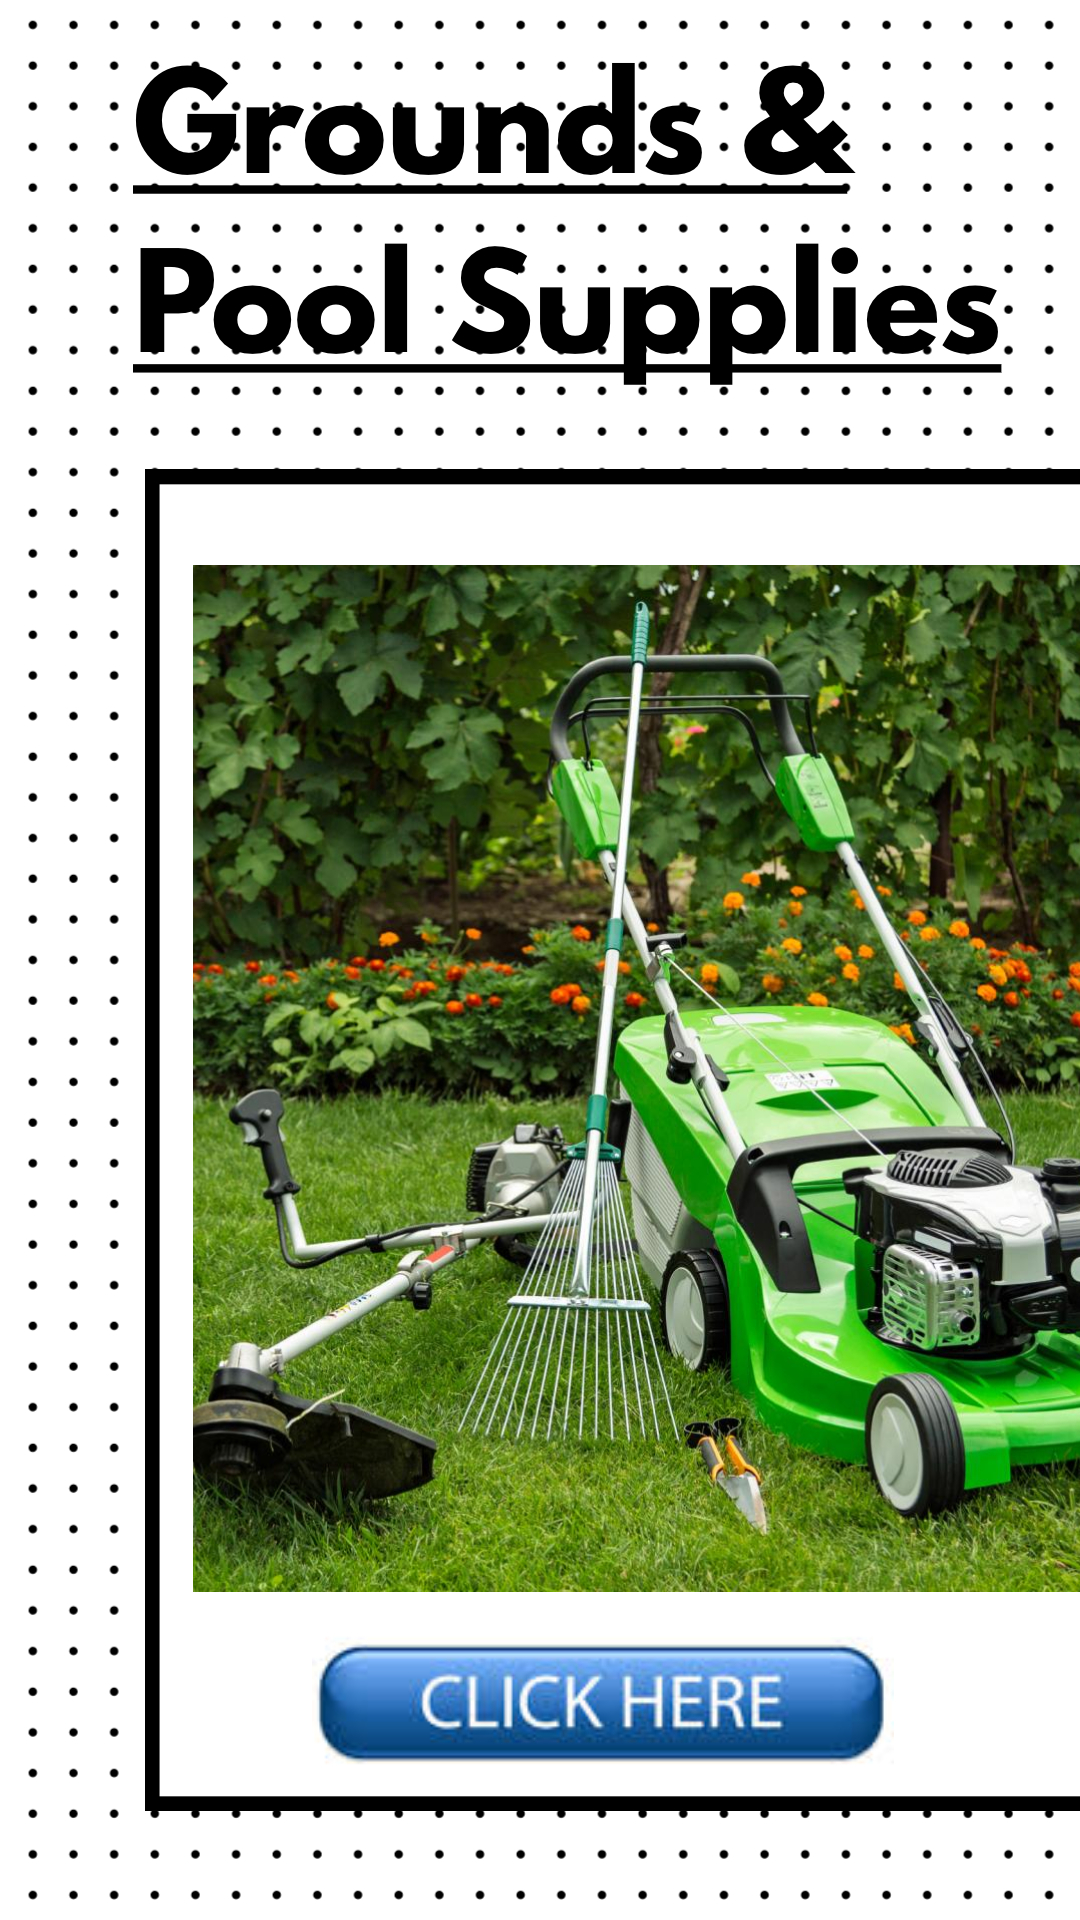 Grounds & Pool Supplies